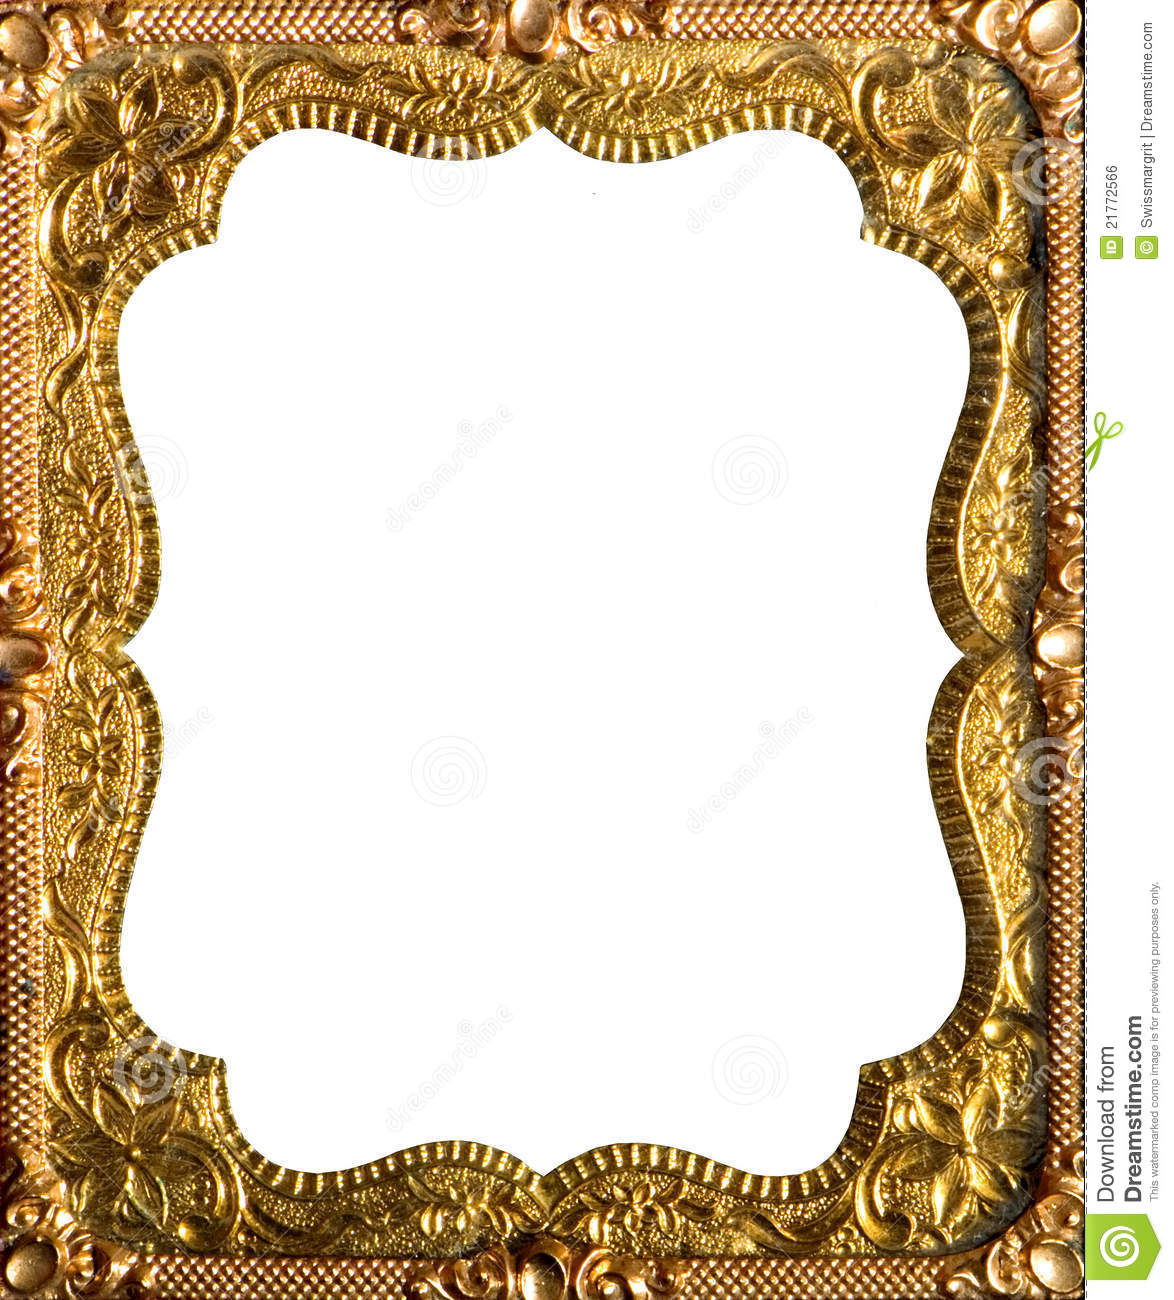 Ornate gold frame .